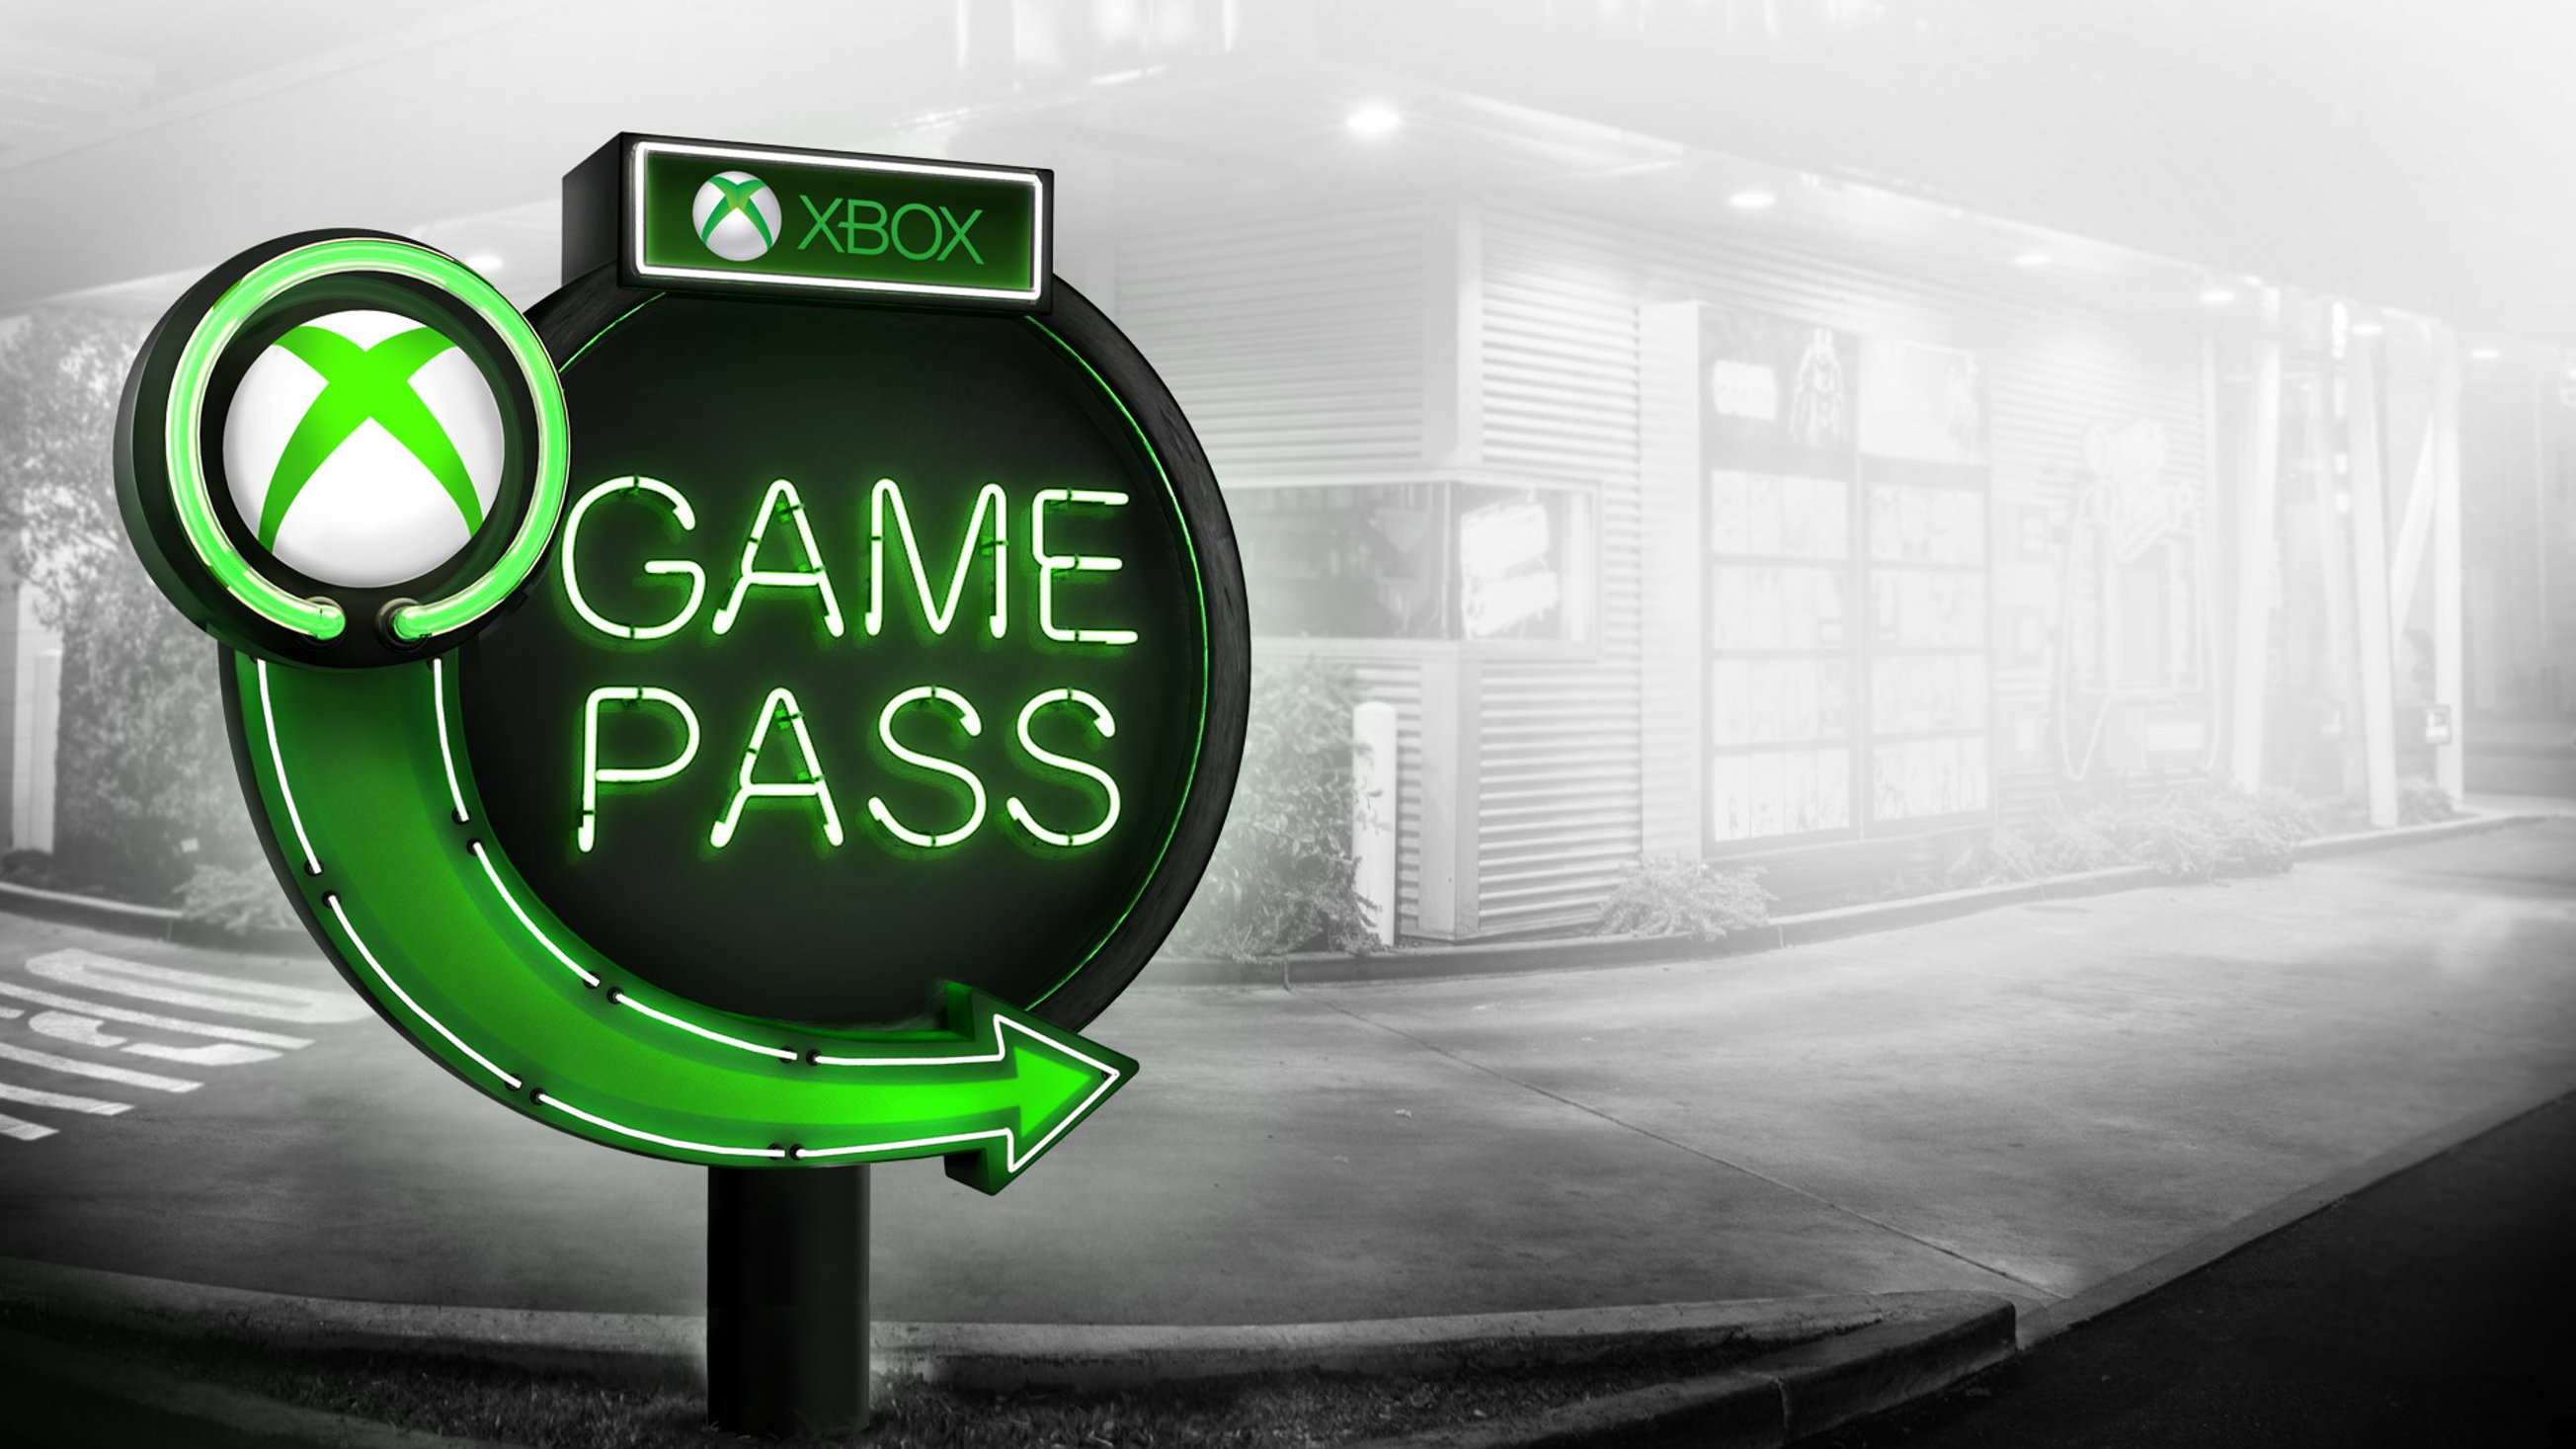 fallout-4-y-the-division-llega-al-xbox-game-pass-frikigamers.com